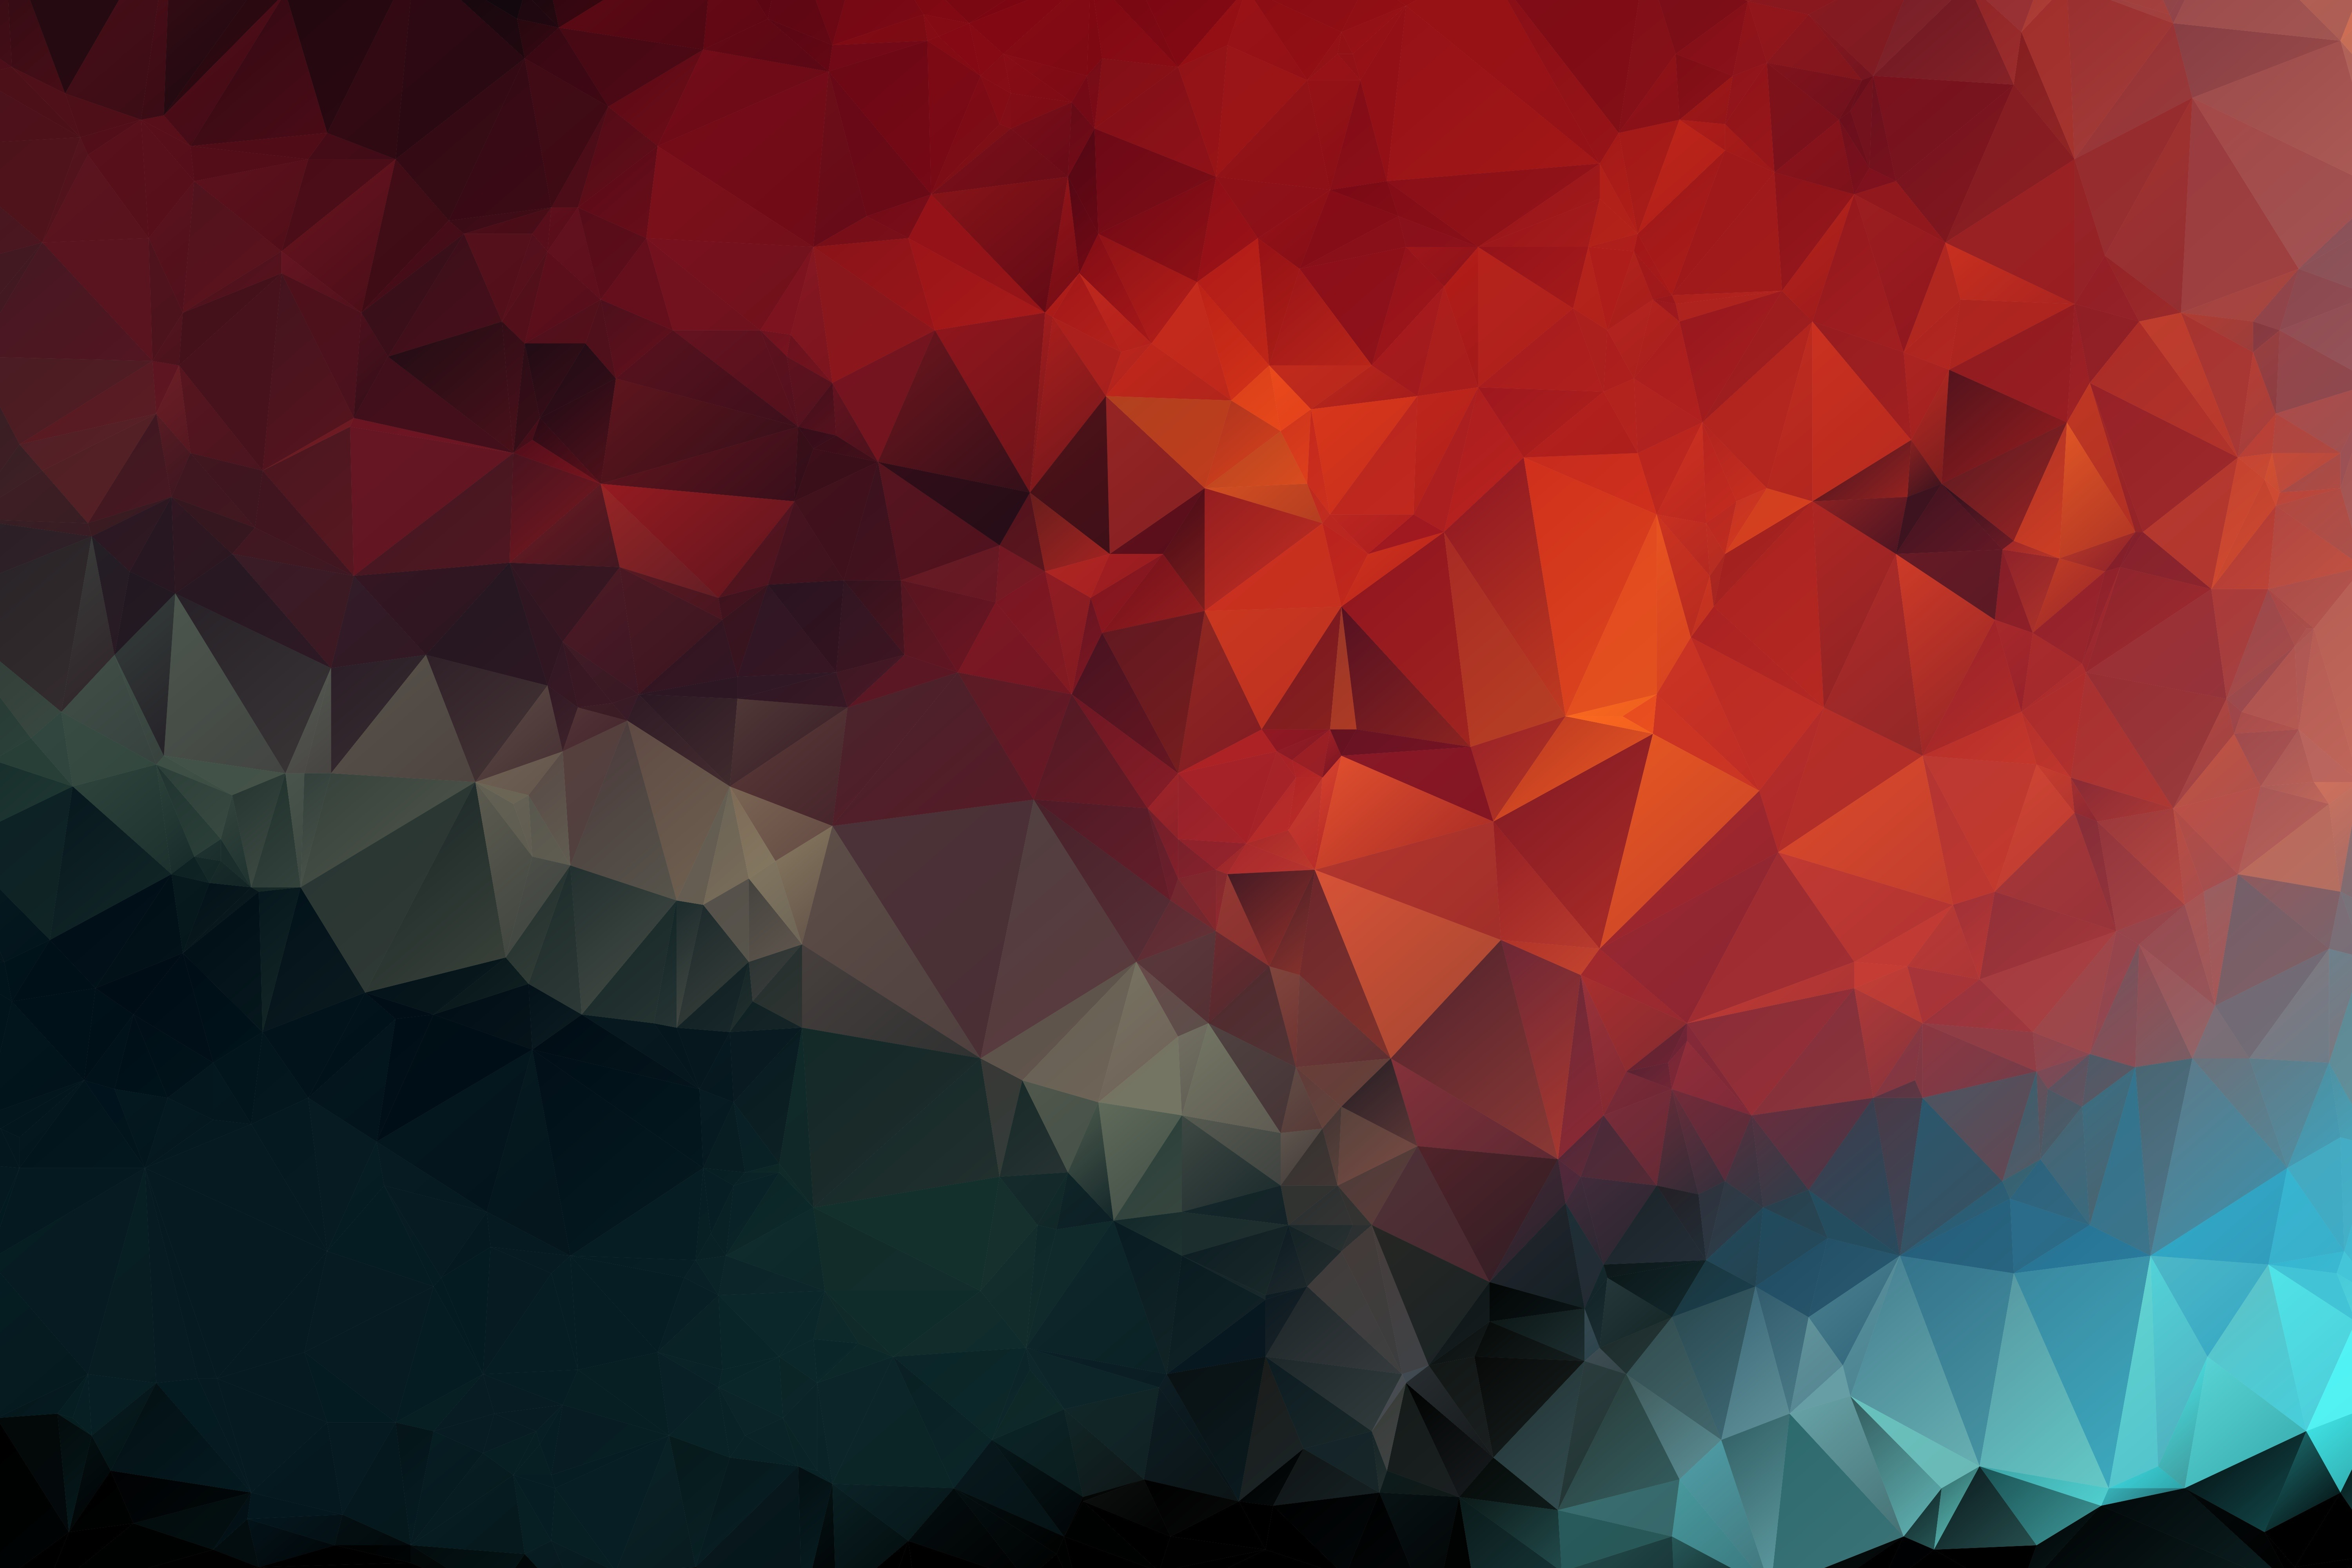 144576 download wallpaper Textures, Texture, Geometric, Triangles, Mosaic screensavers and pictures for free